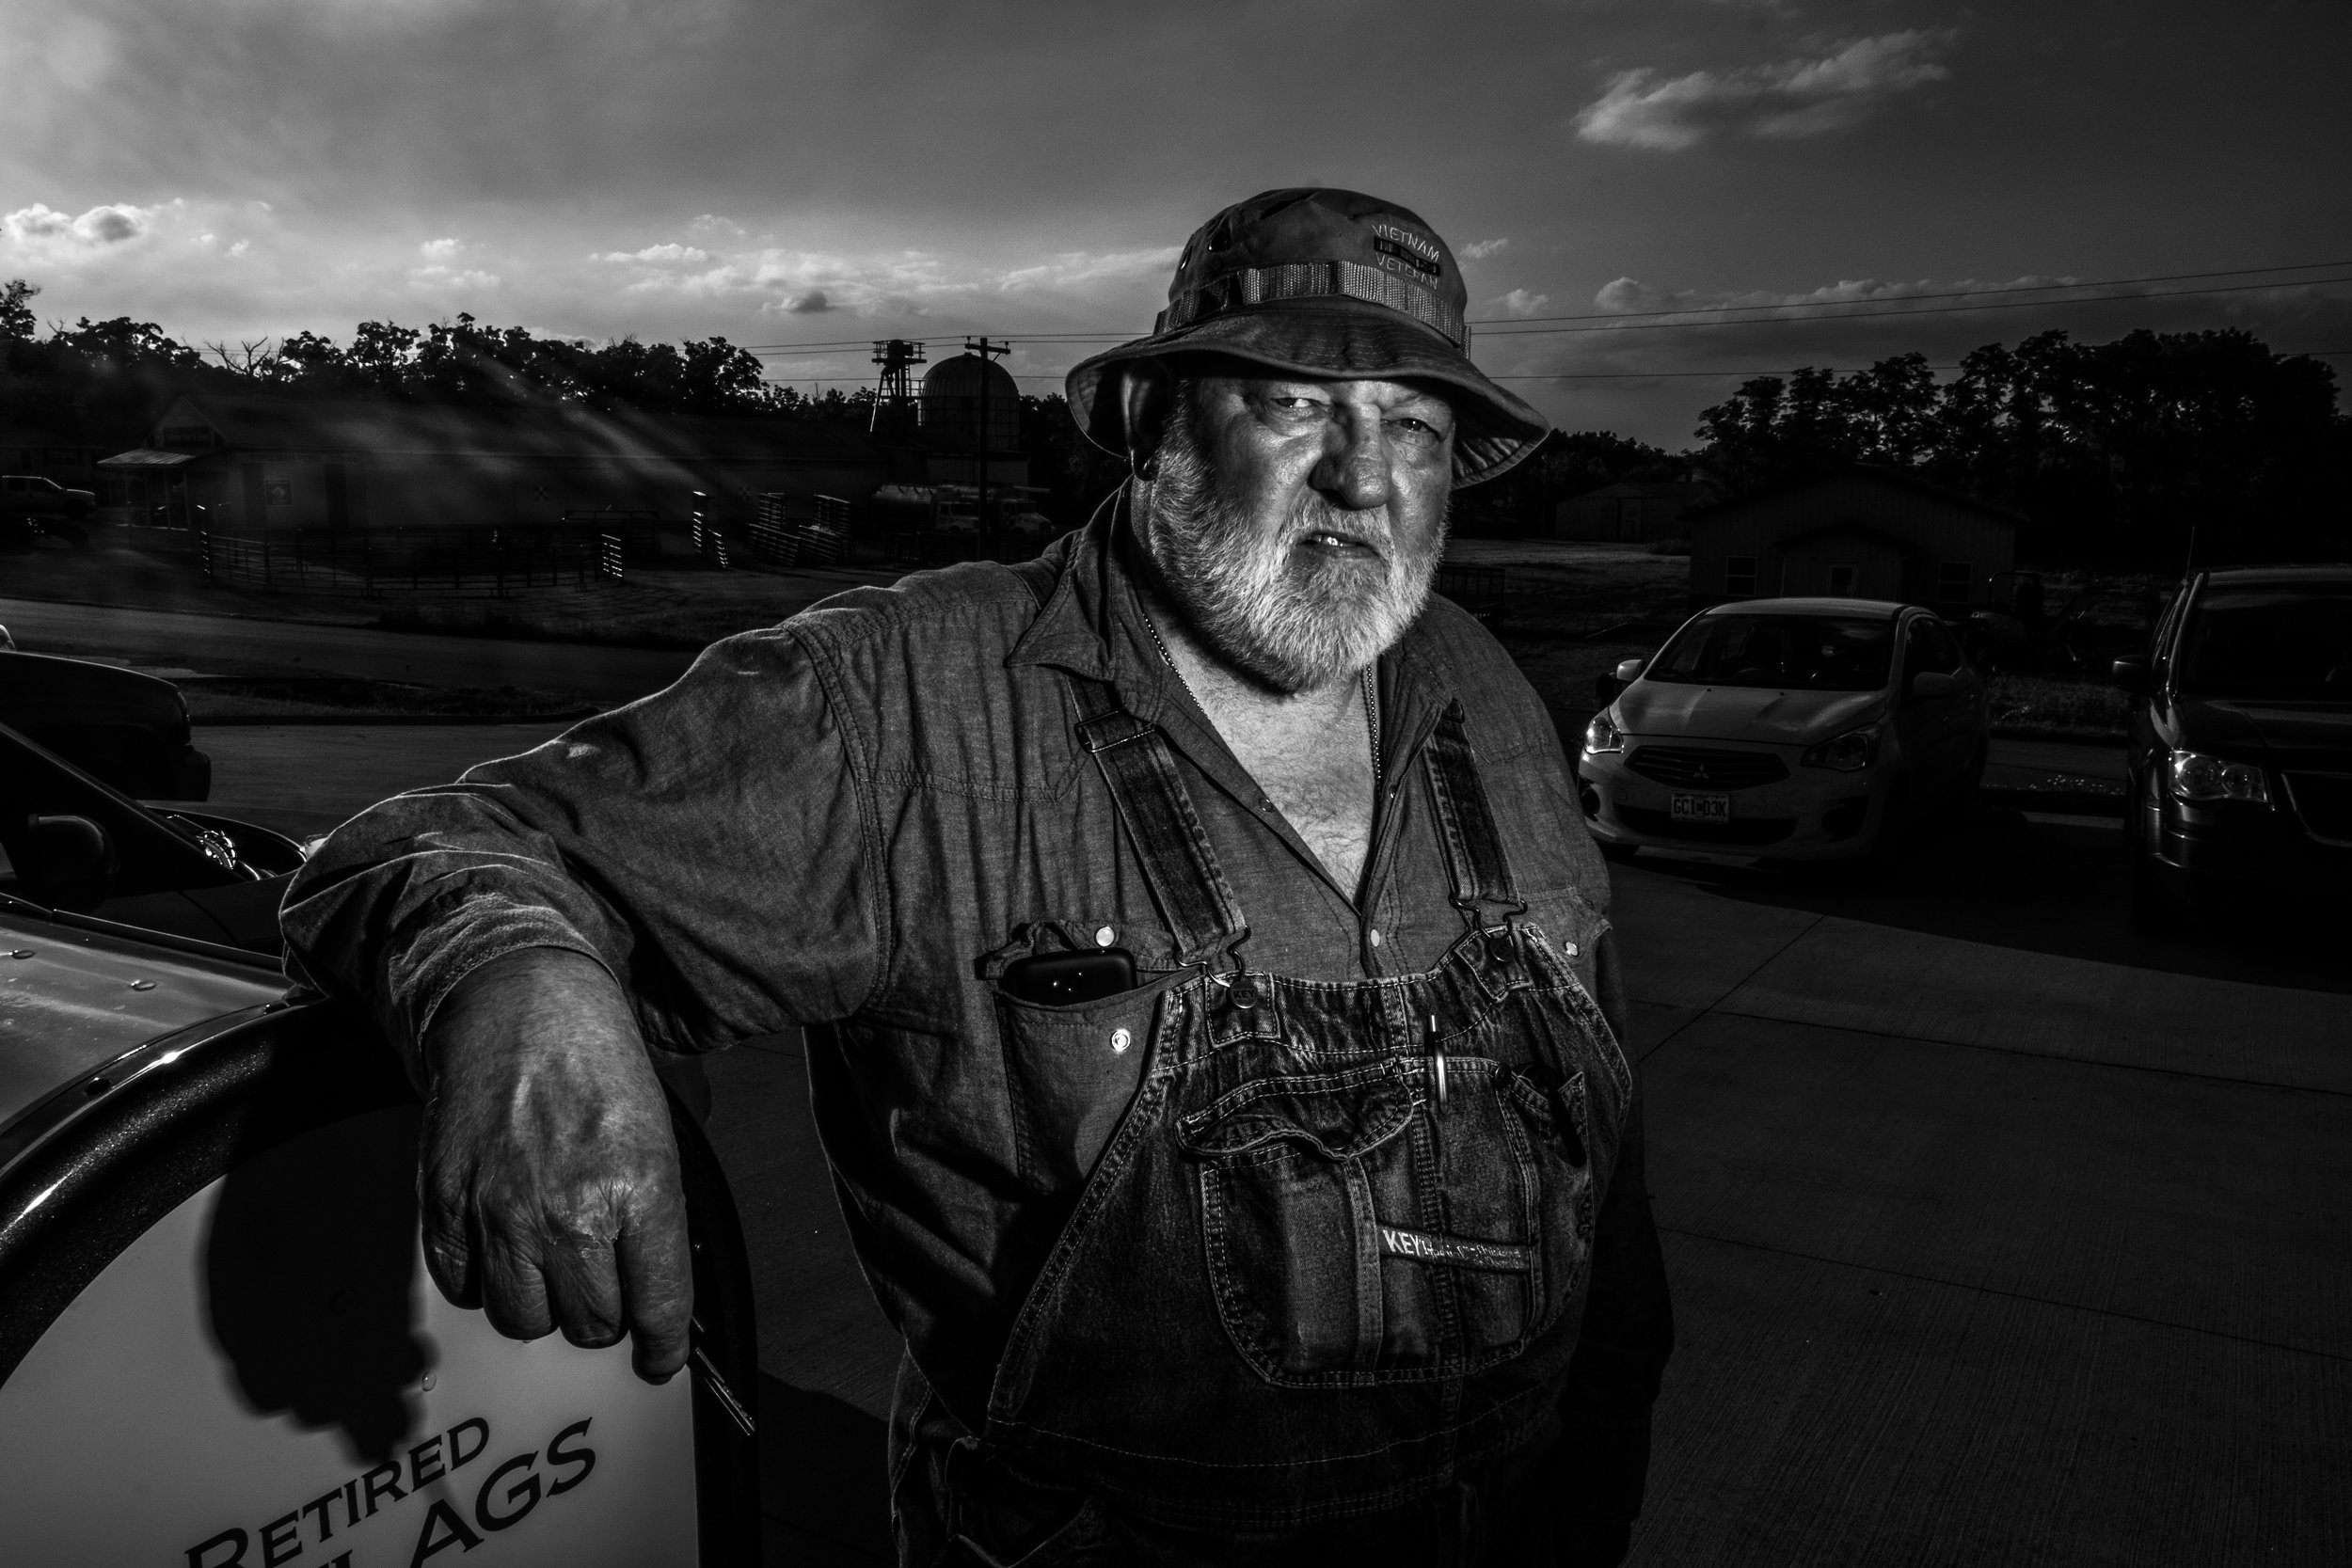 US Navy veteran and Vandalia resident, Randy Caldwell, poses for a portrait outside the VFW on Thursday, Jun. 20, 2019. Caldwell has been a lifetime member of the VFW and served as diesel mechanic in Vietnam in 1969.